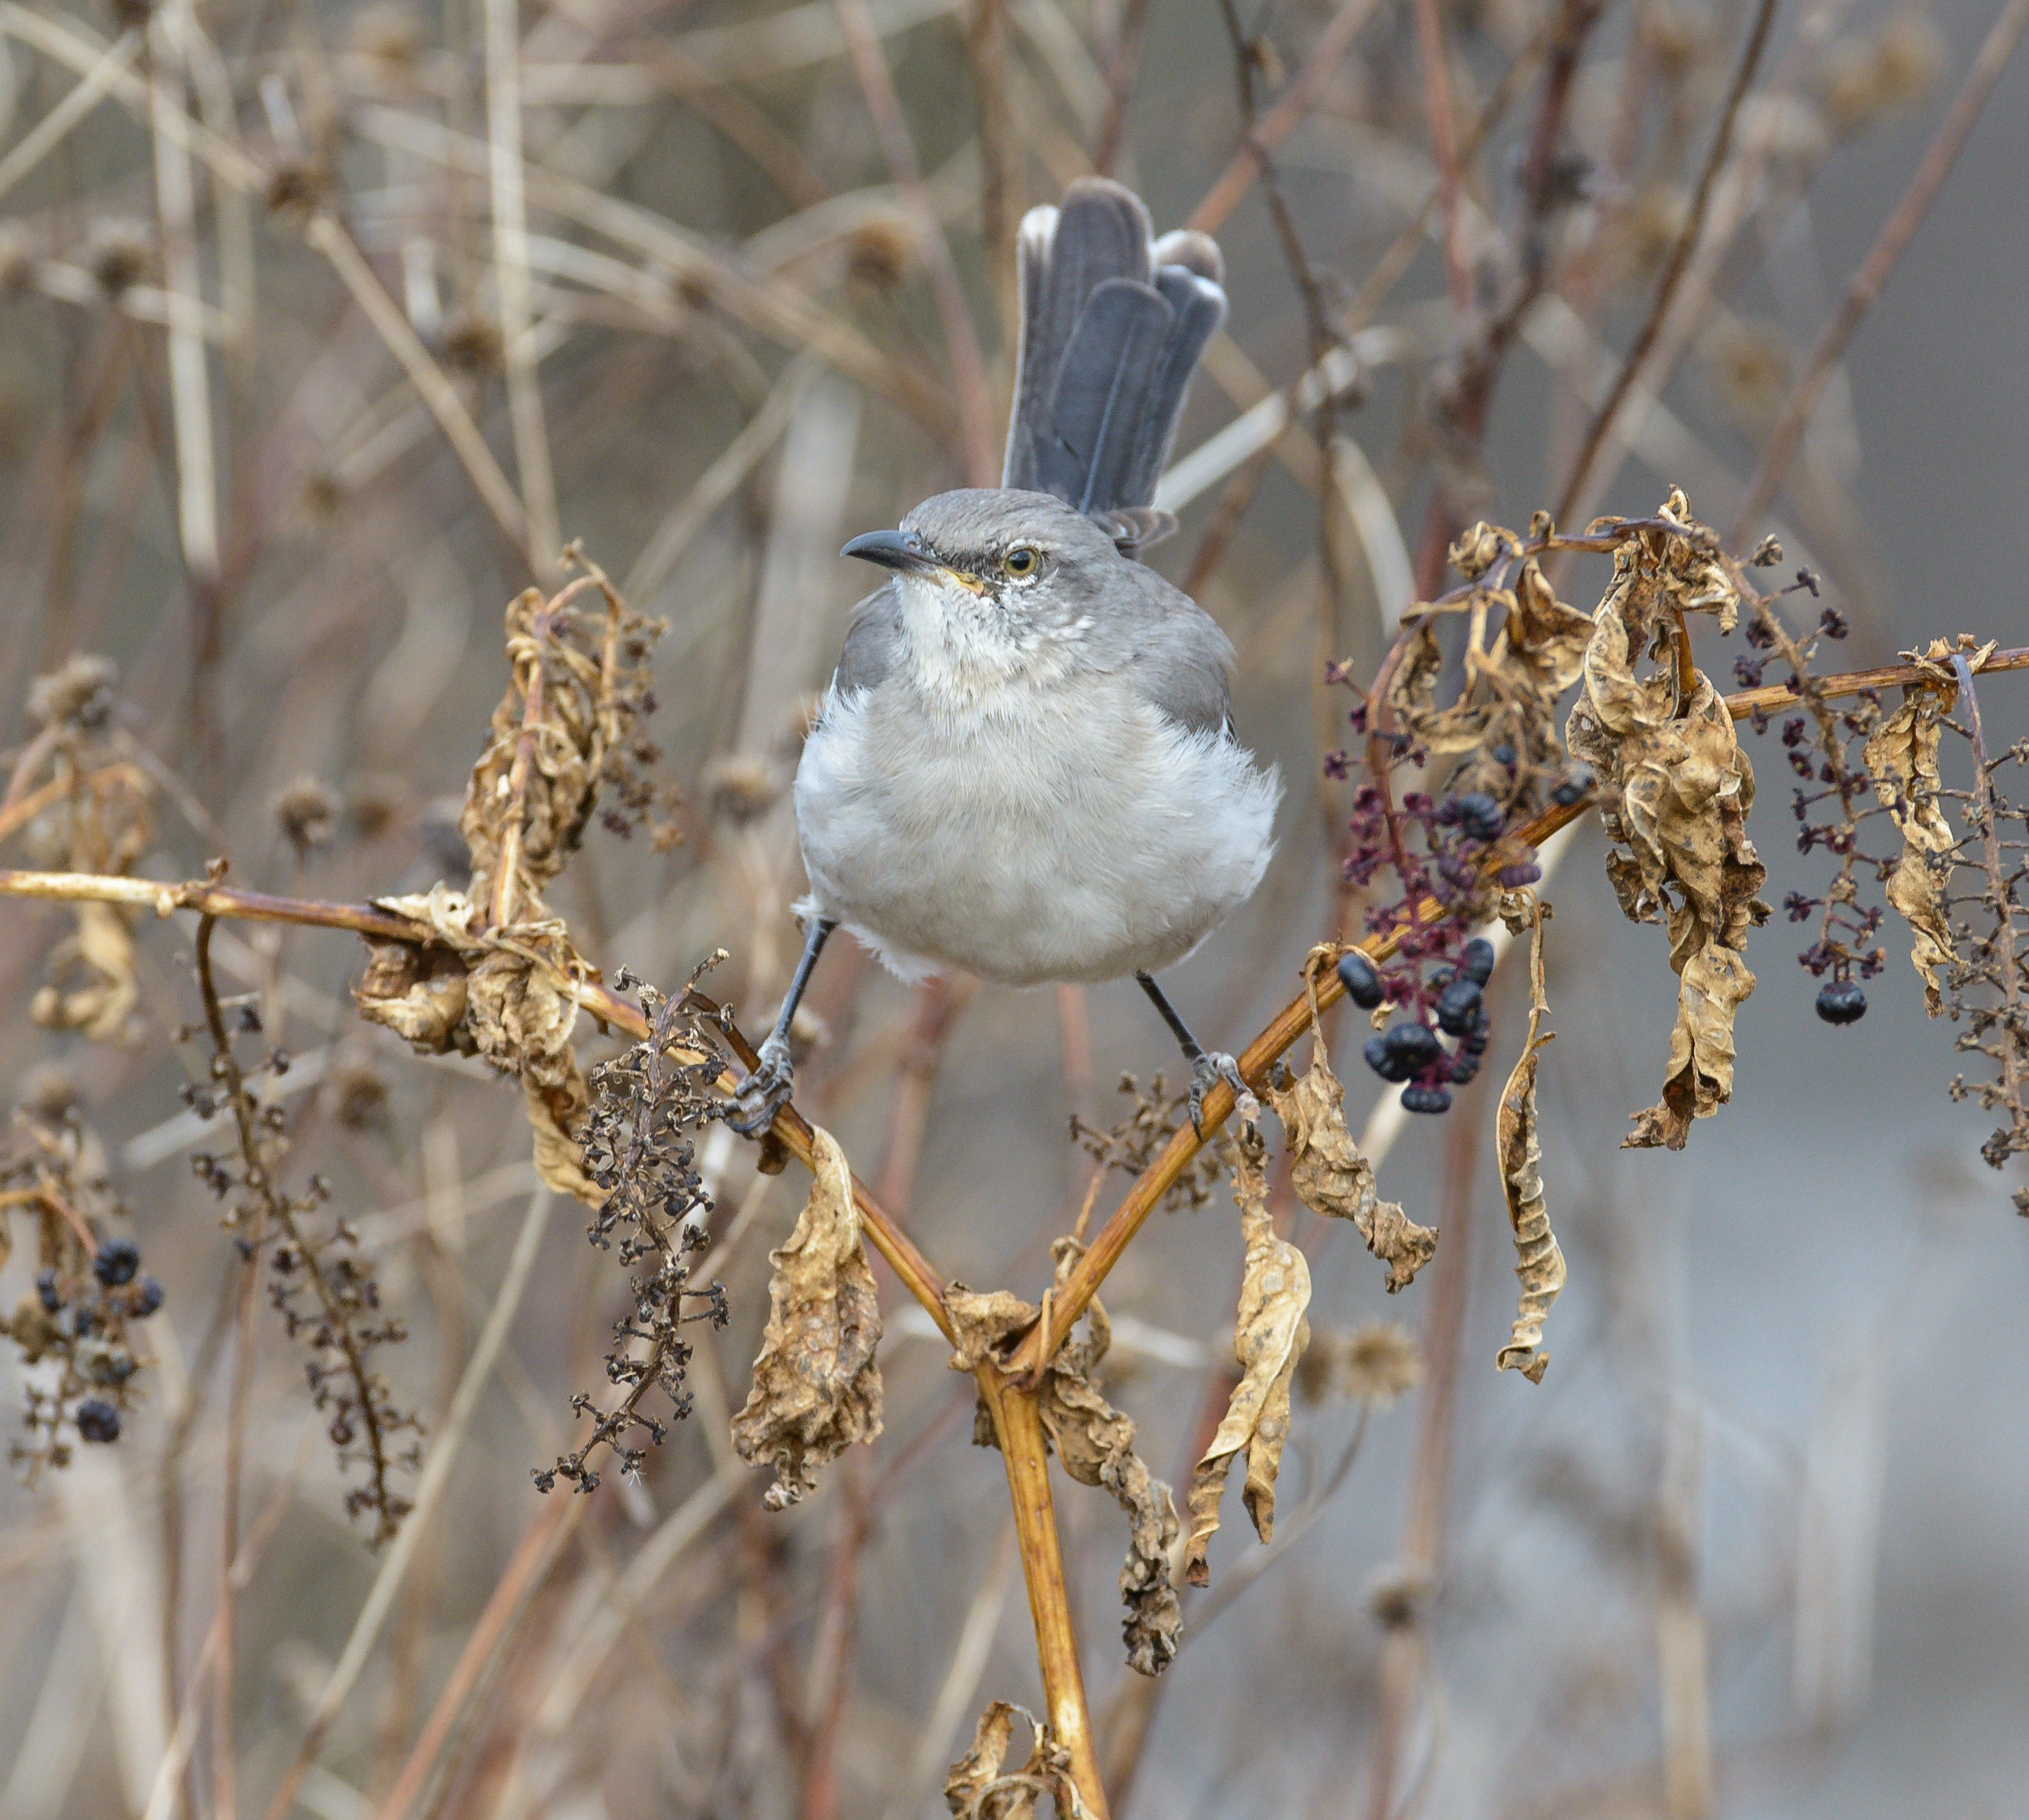 14 northern mockingbird pokeweed steven kersting flickr cc%28by nc nd%202.0%29